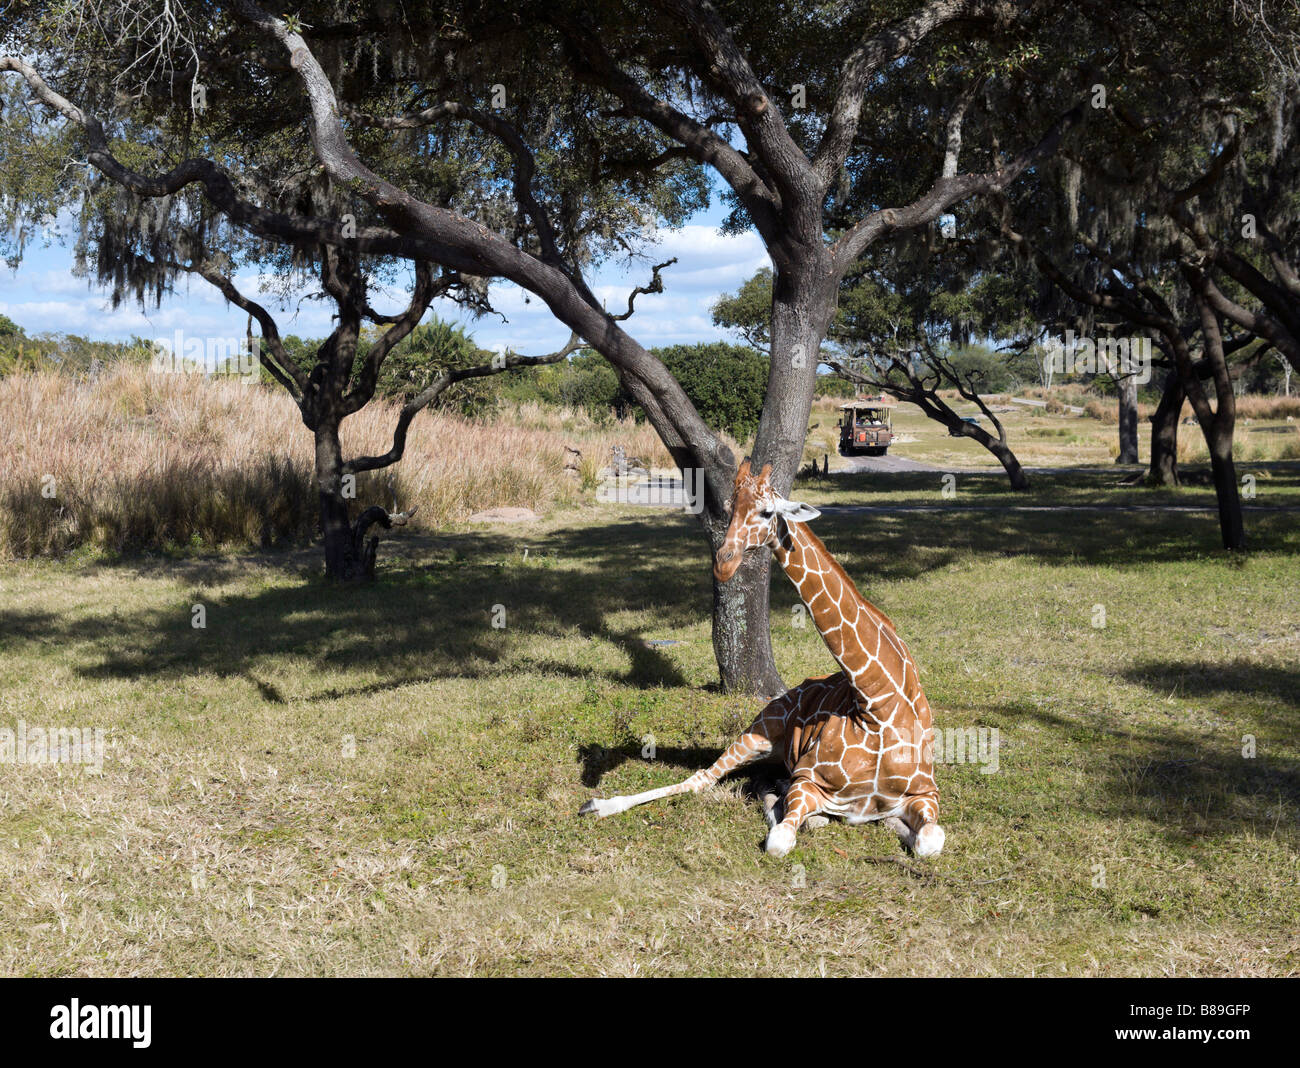 Giraffe on the Kilimanjaro Safari with Safari truck behind, Animal Kingdom, Walt Disney World Resort, Orlando, Florida - Stock Image